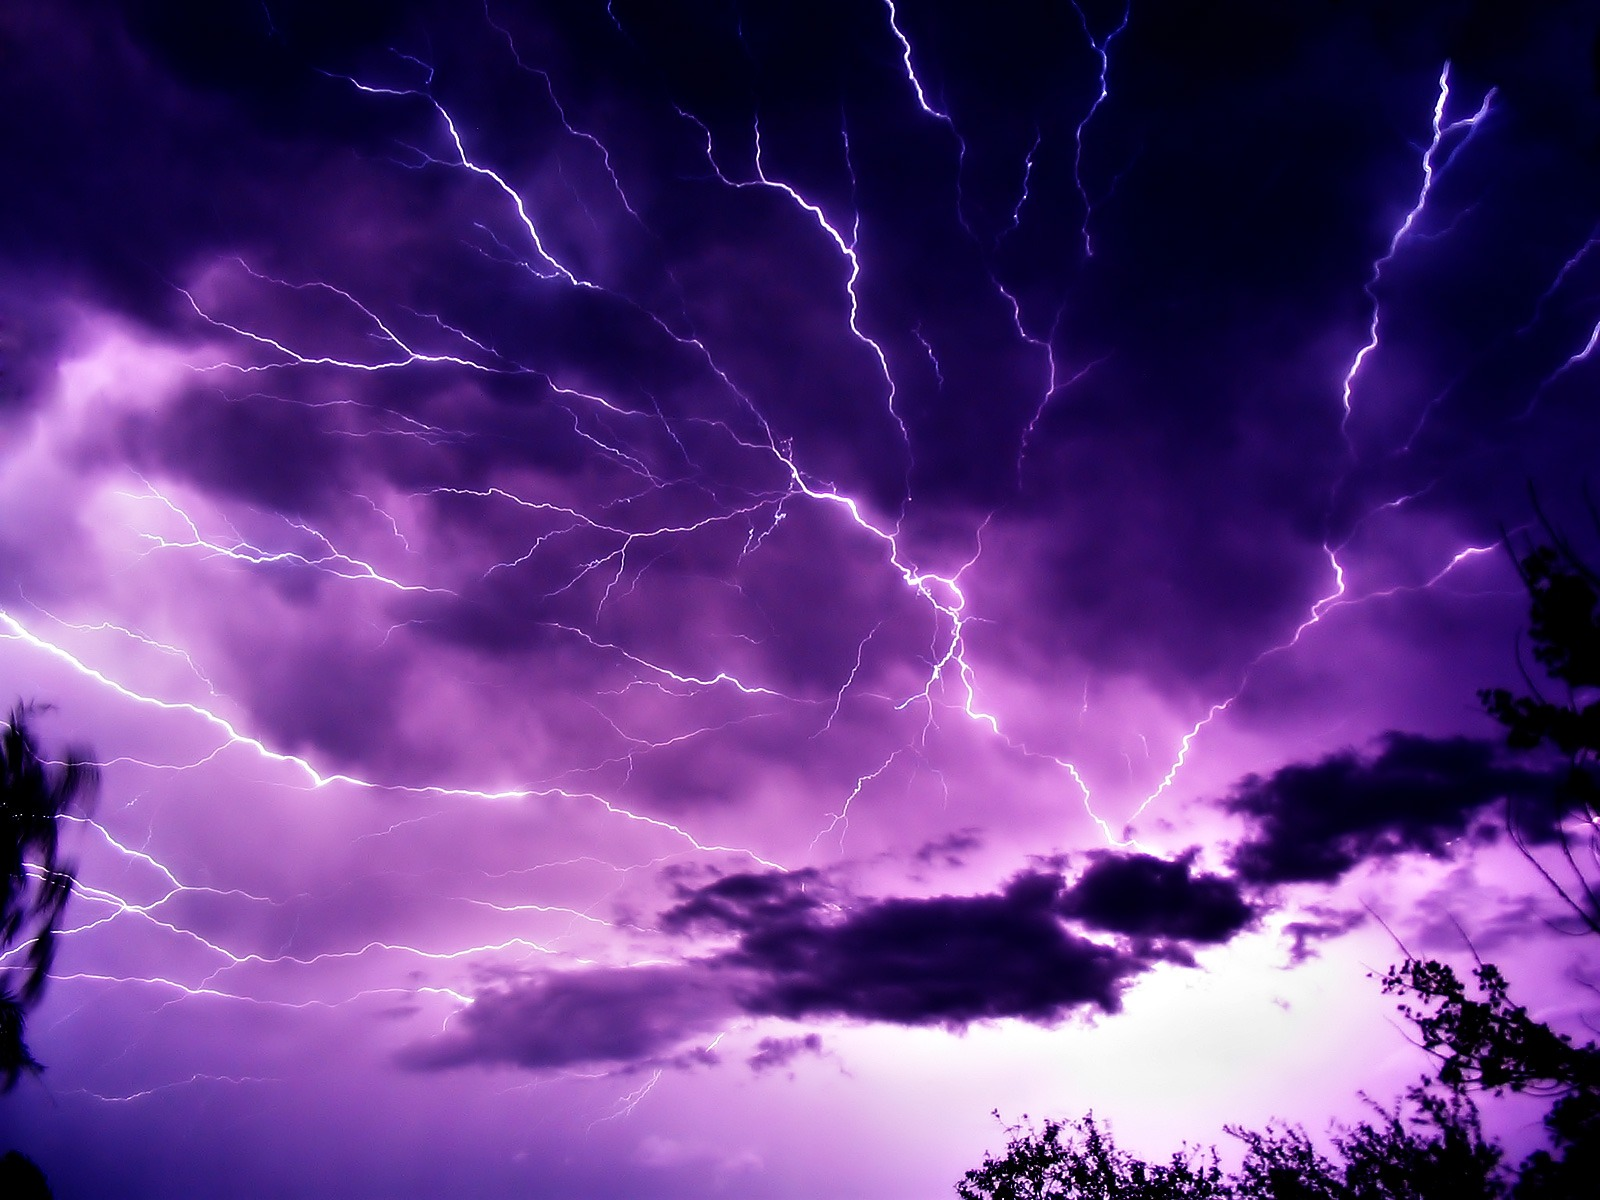 Mauve Sky with Lightning Wallpaper Landscape Nature Wallpapers